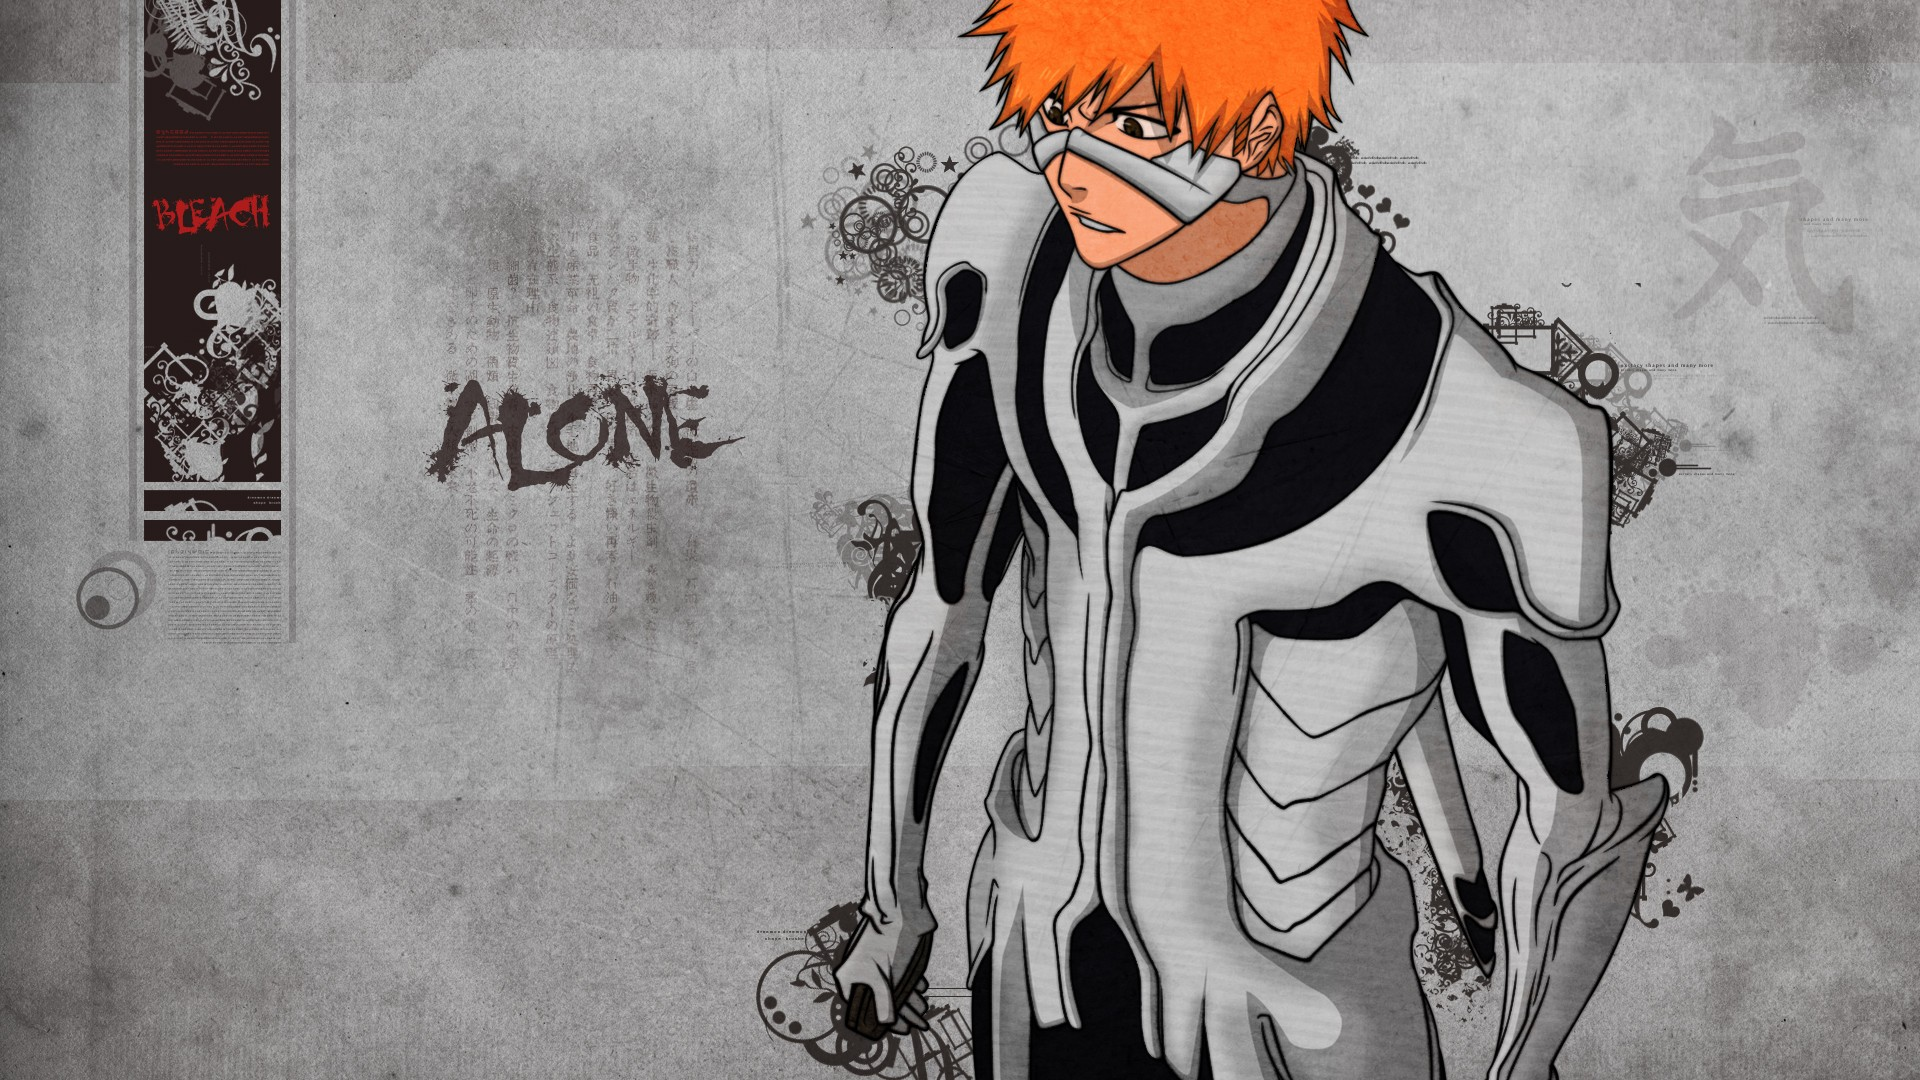 Alone 3d Wallpaper Bleach Kurosaki Ichigo Anime Anime Boys Alone Synceed